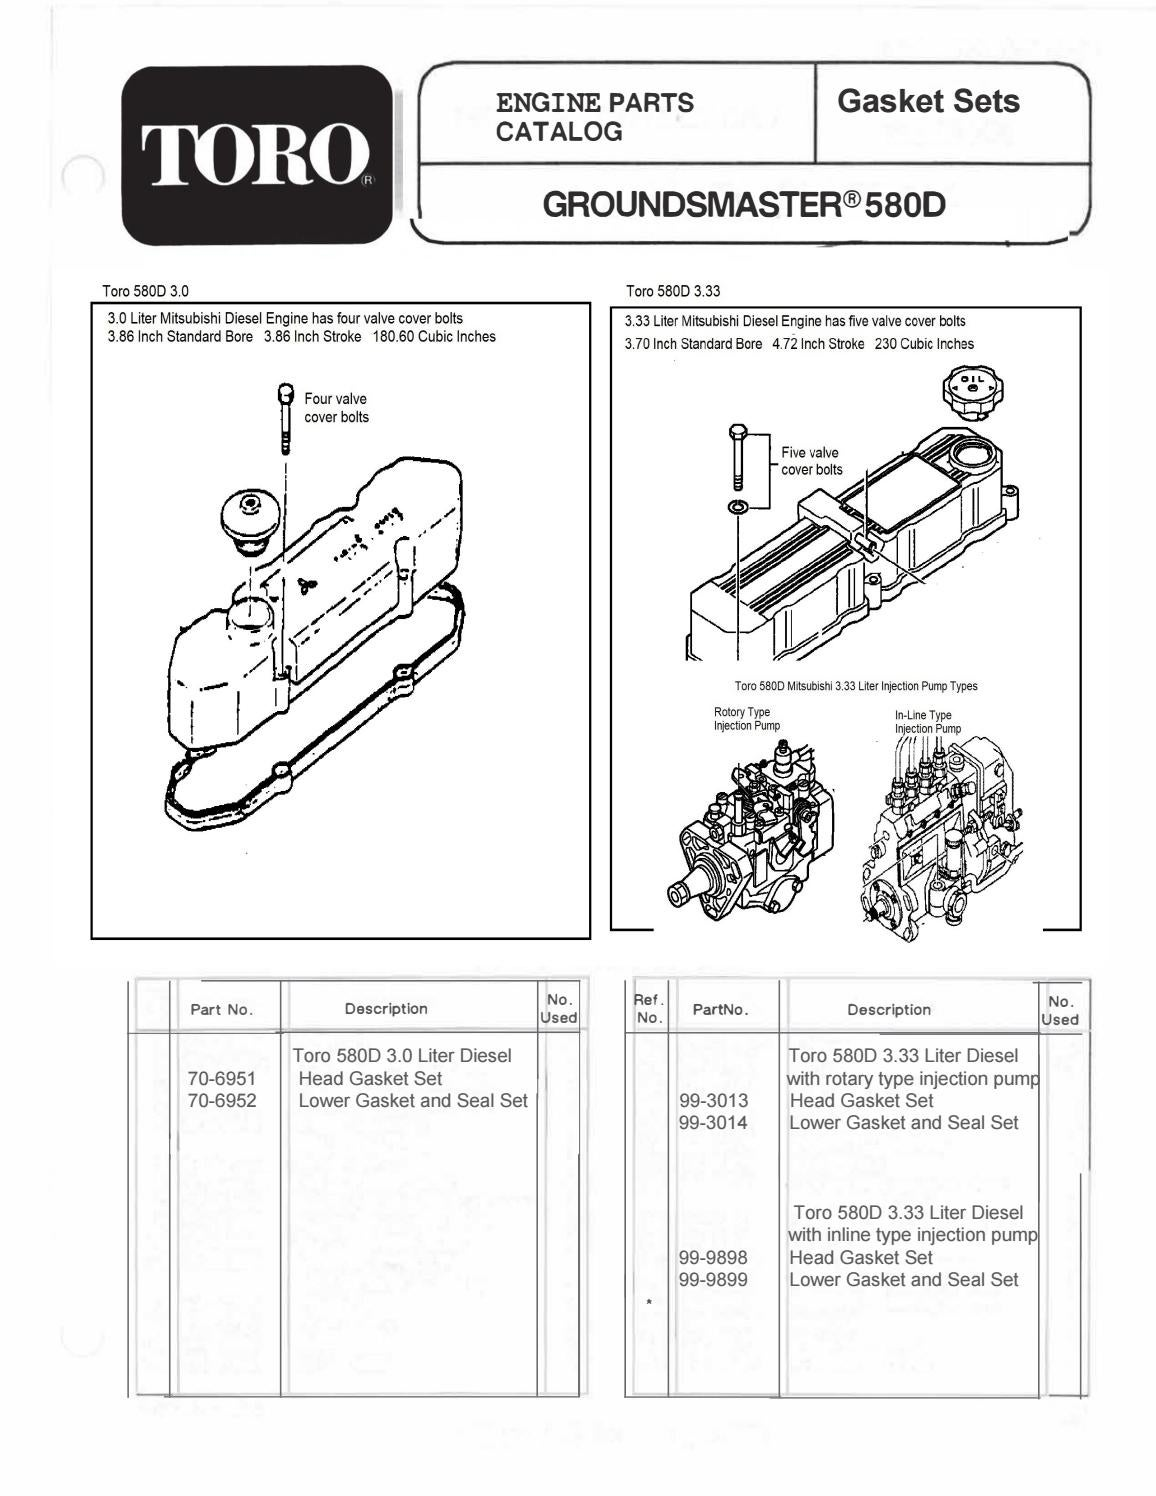 John Deere 318 Onan Engine Wiring Diagram. John Deere ... on